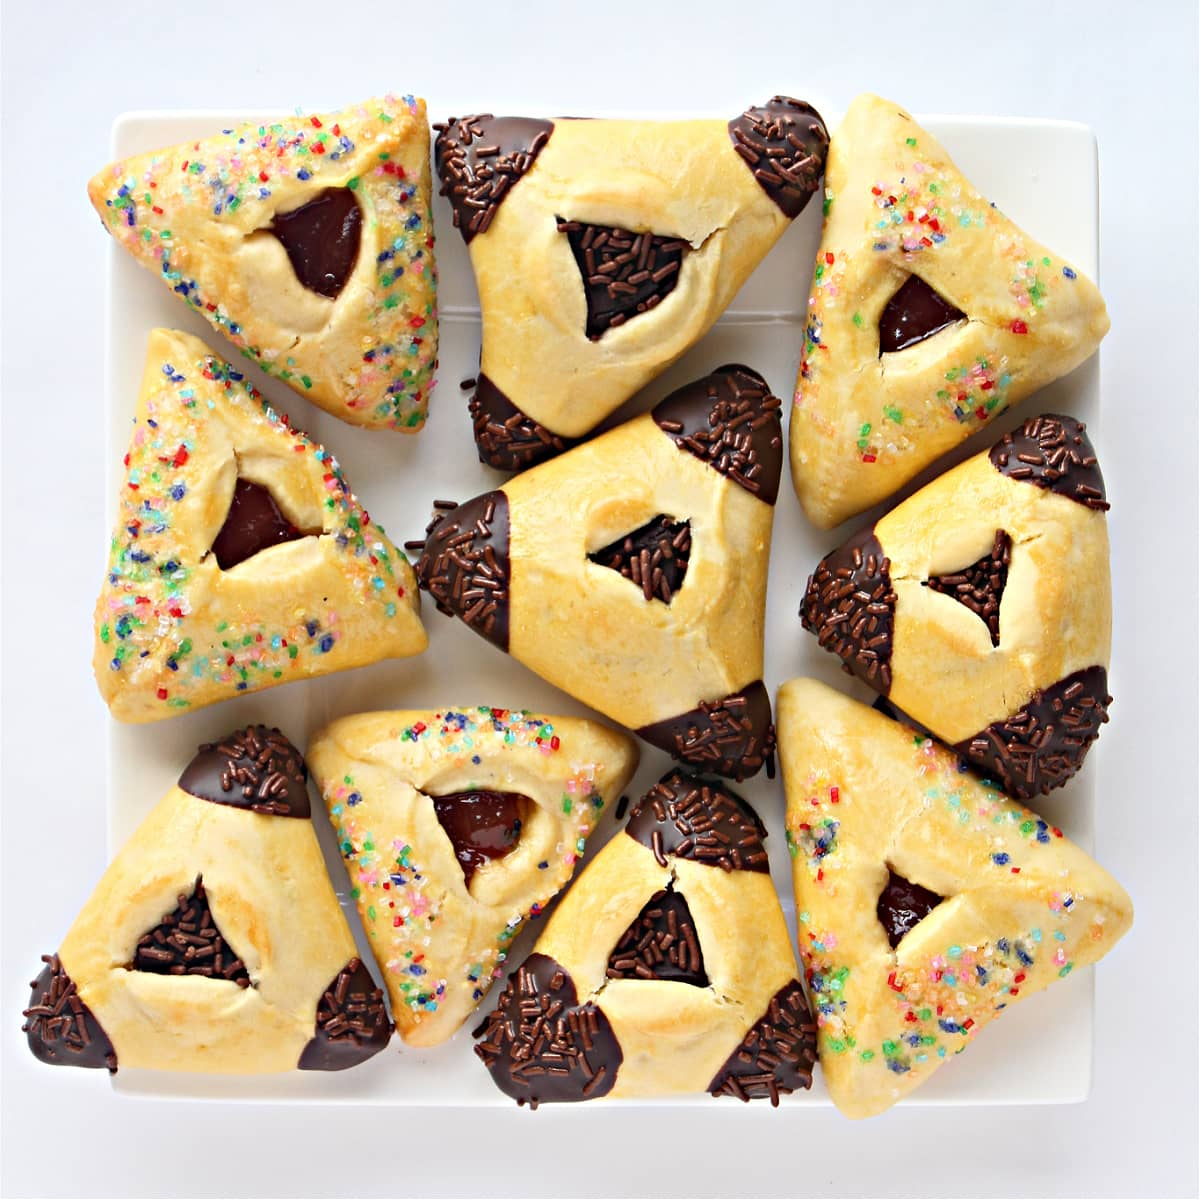 Triangle pocket cookies decorated with chocolate or colored sugar on a square platter.